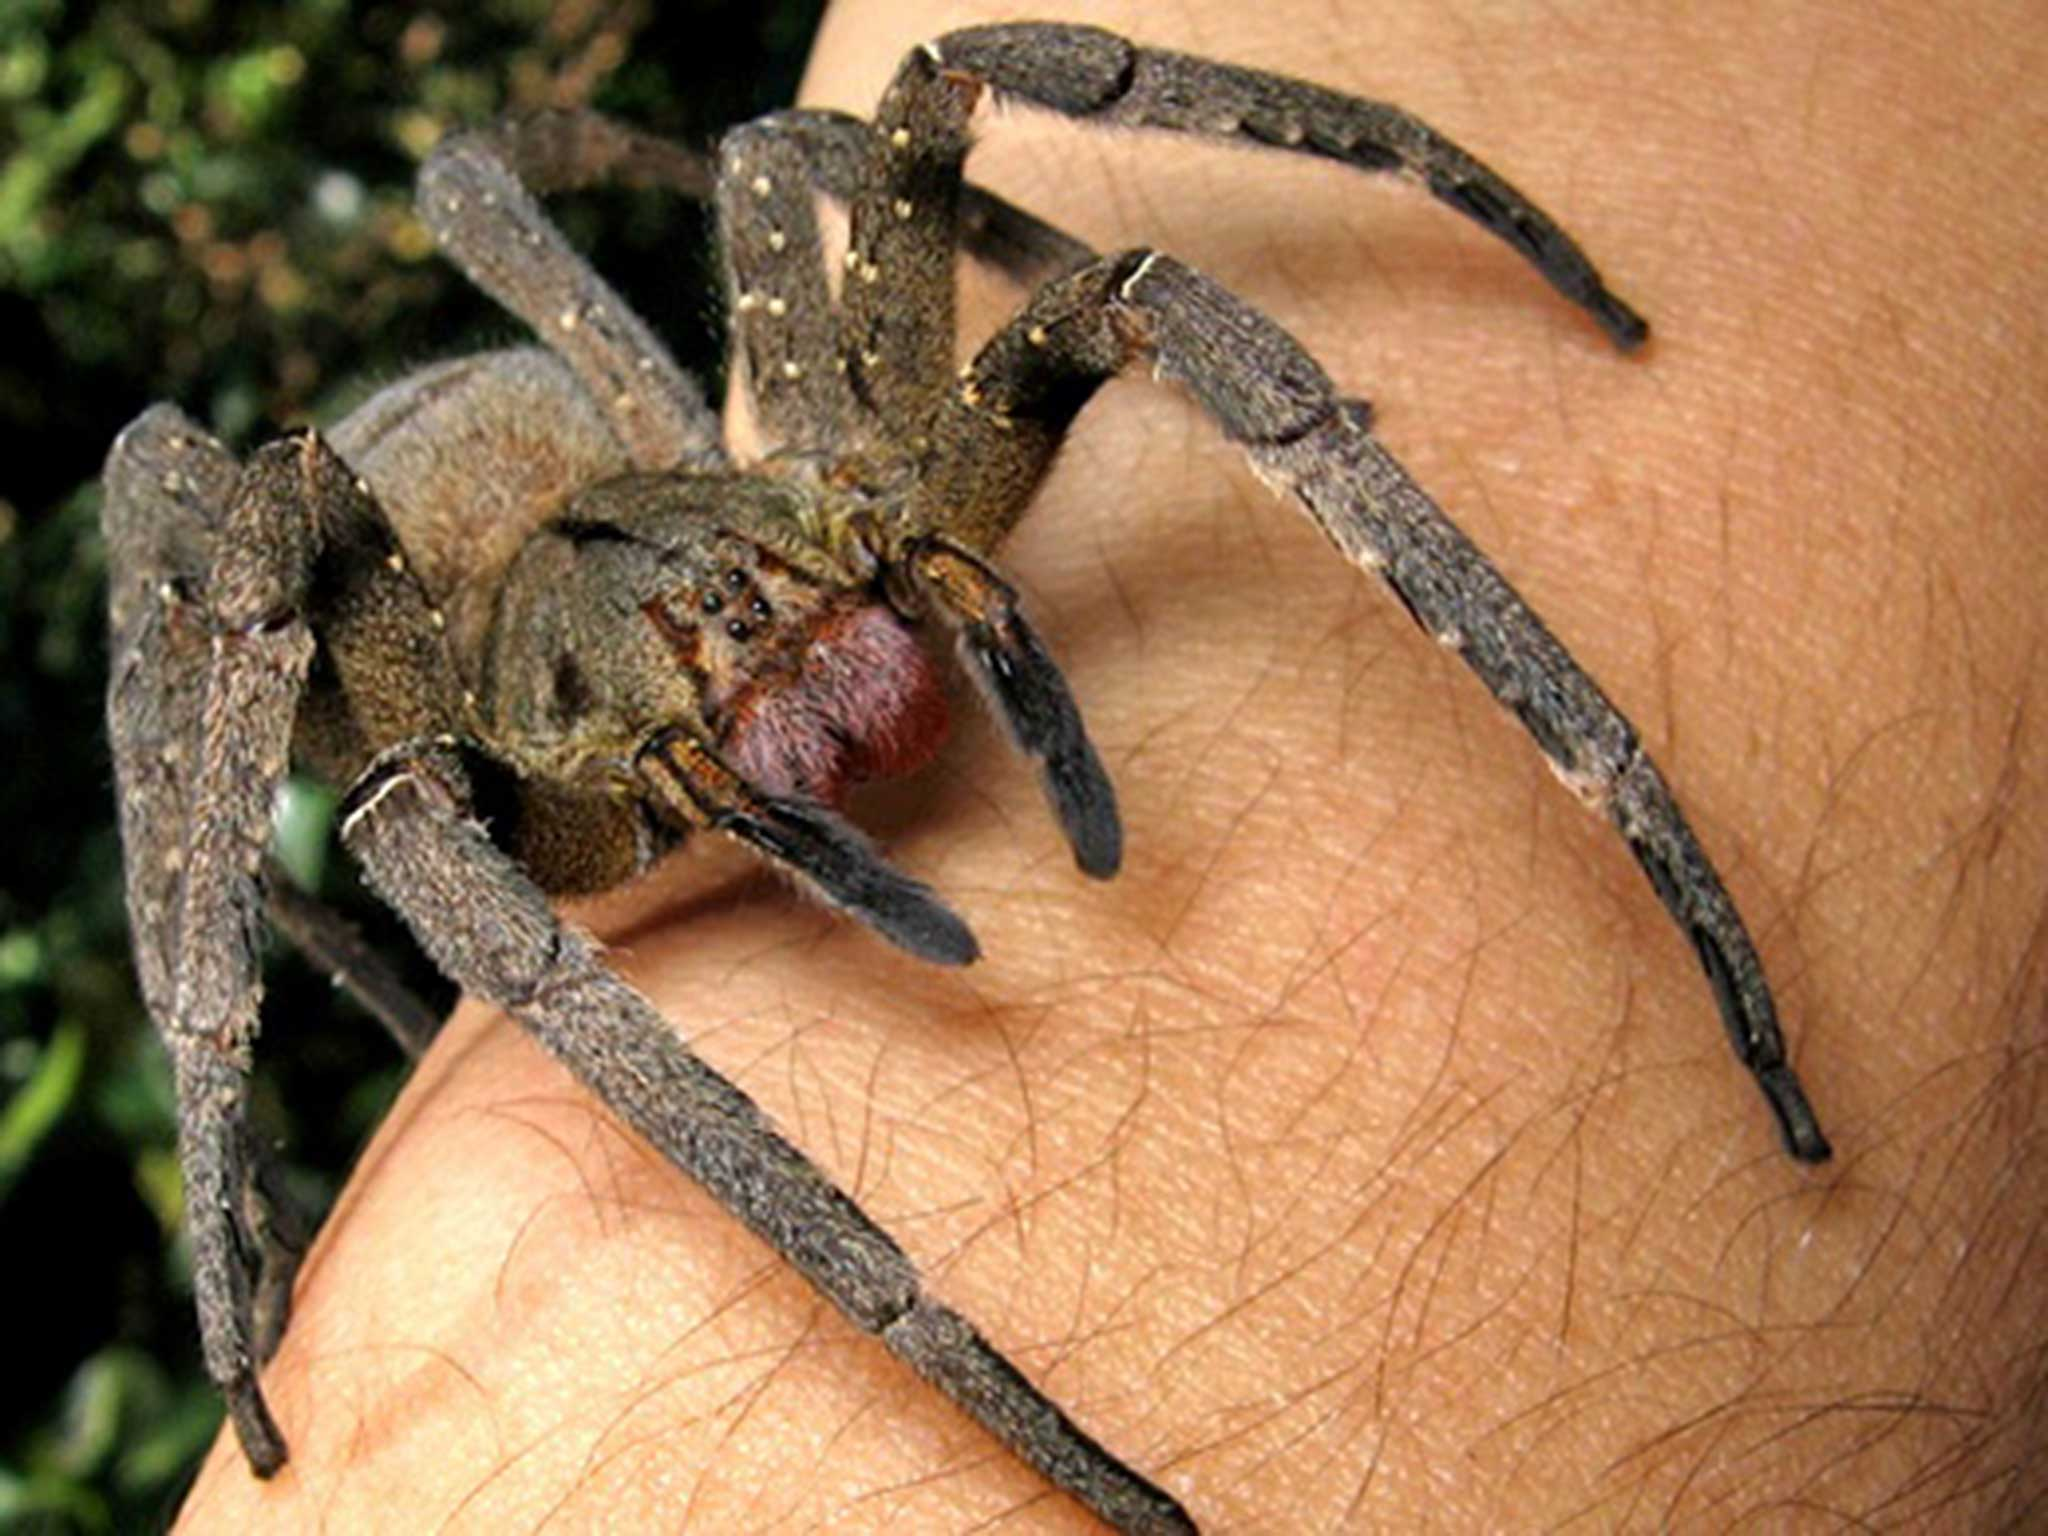 brazilian wandering spider how deadly are the spiders allegedly